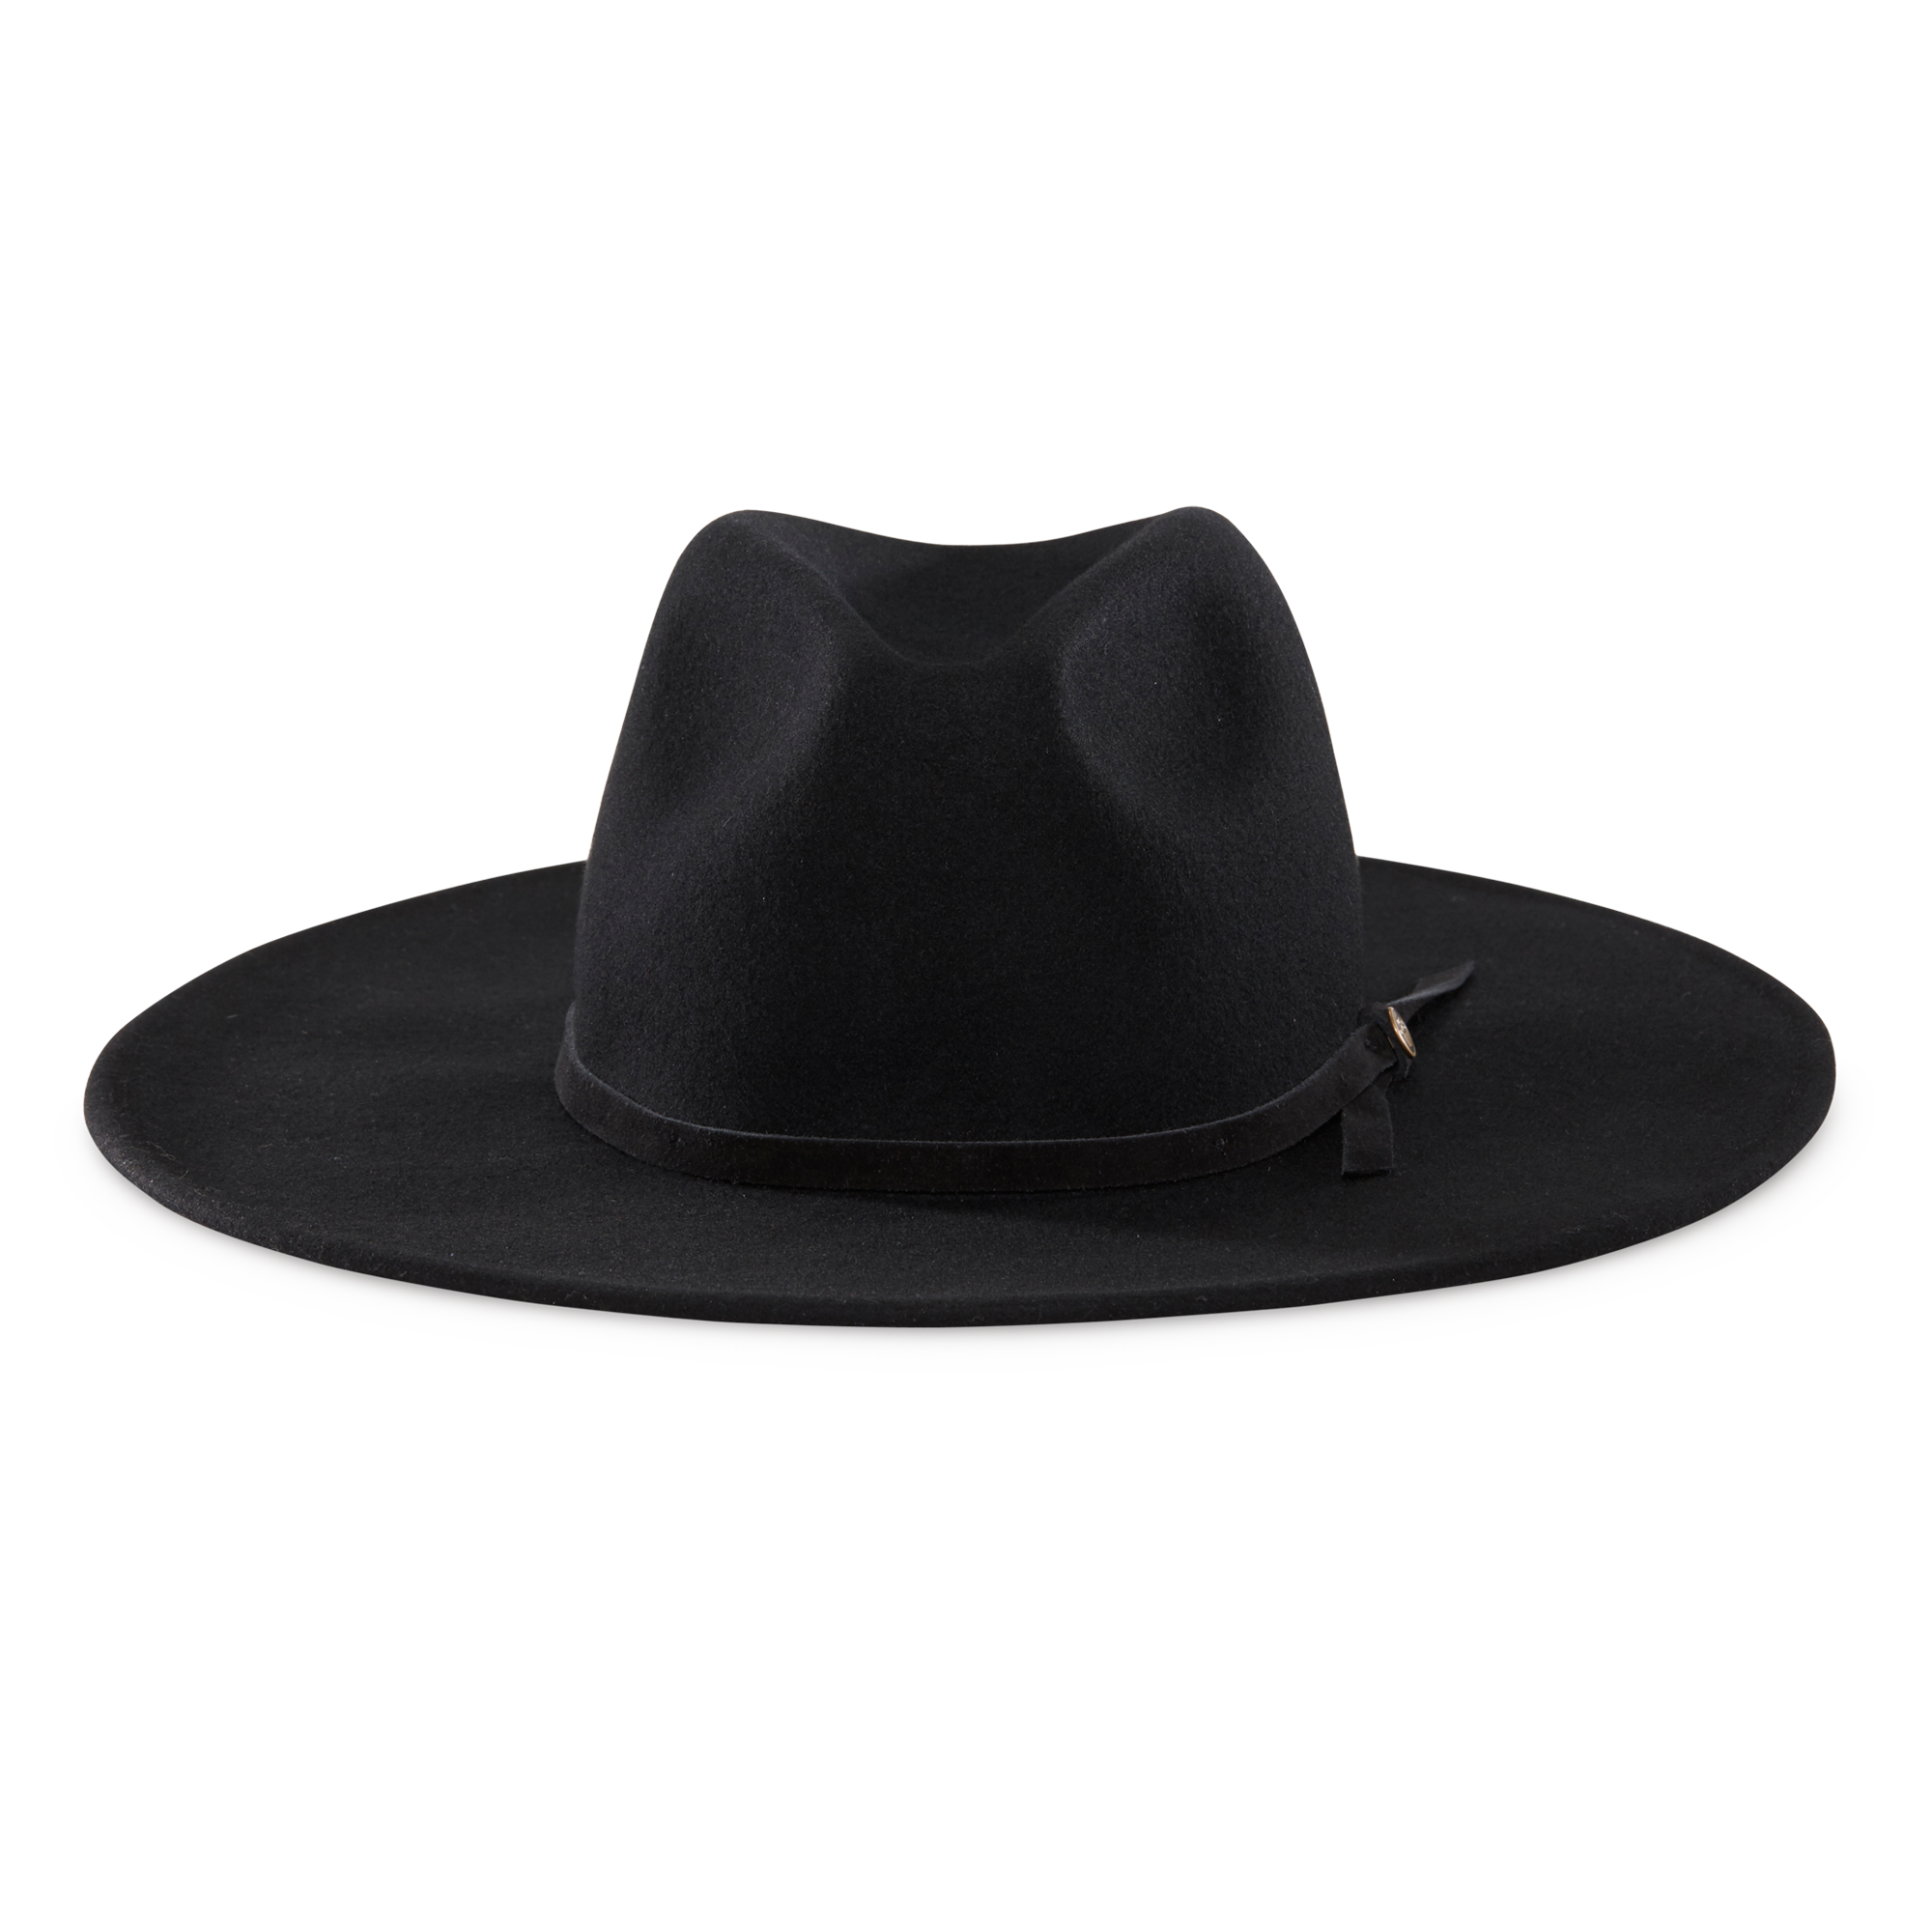 Black fedora png. Queen of knives hat